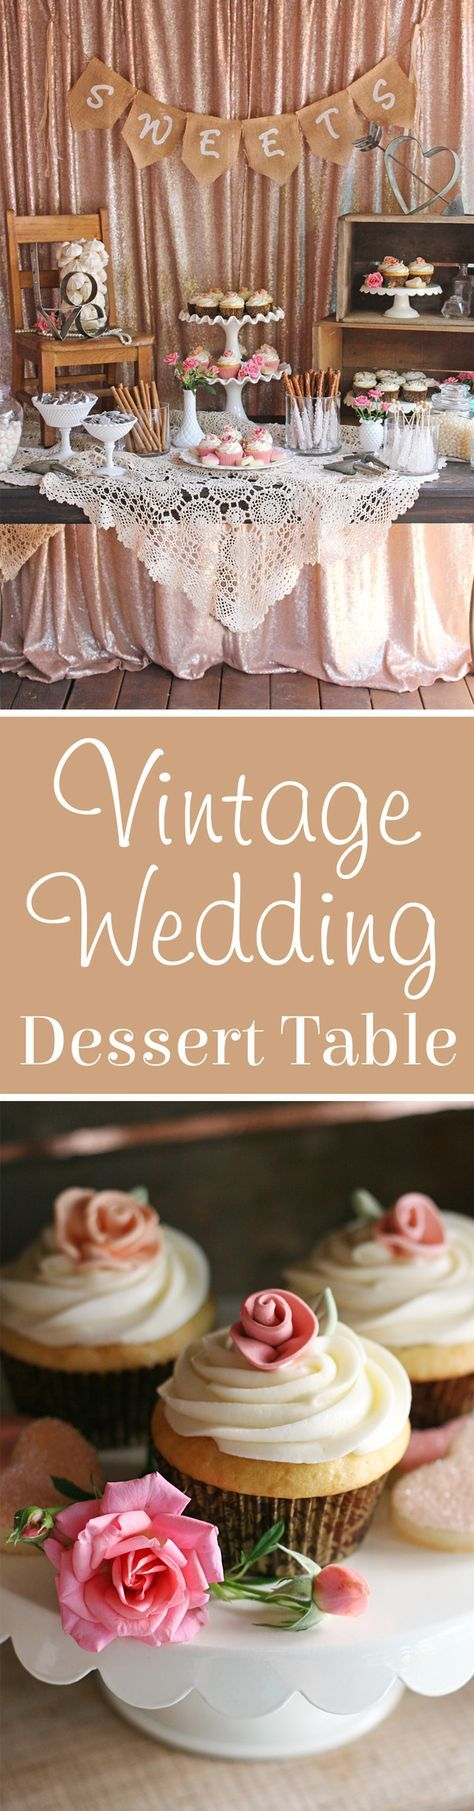 SO PRETTY! Beautifully rustic and romantic Vintage Wedding Dessert Table!